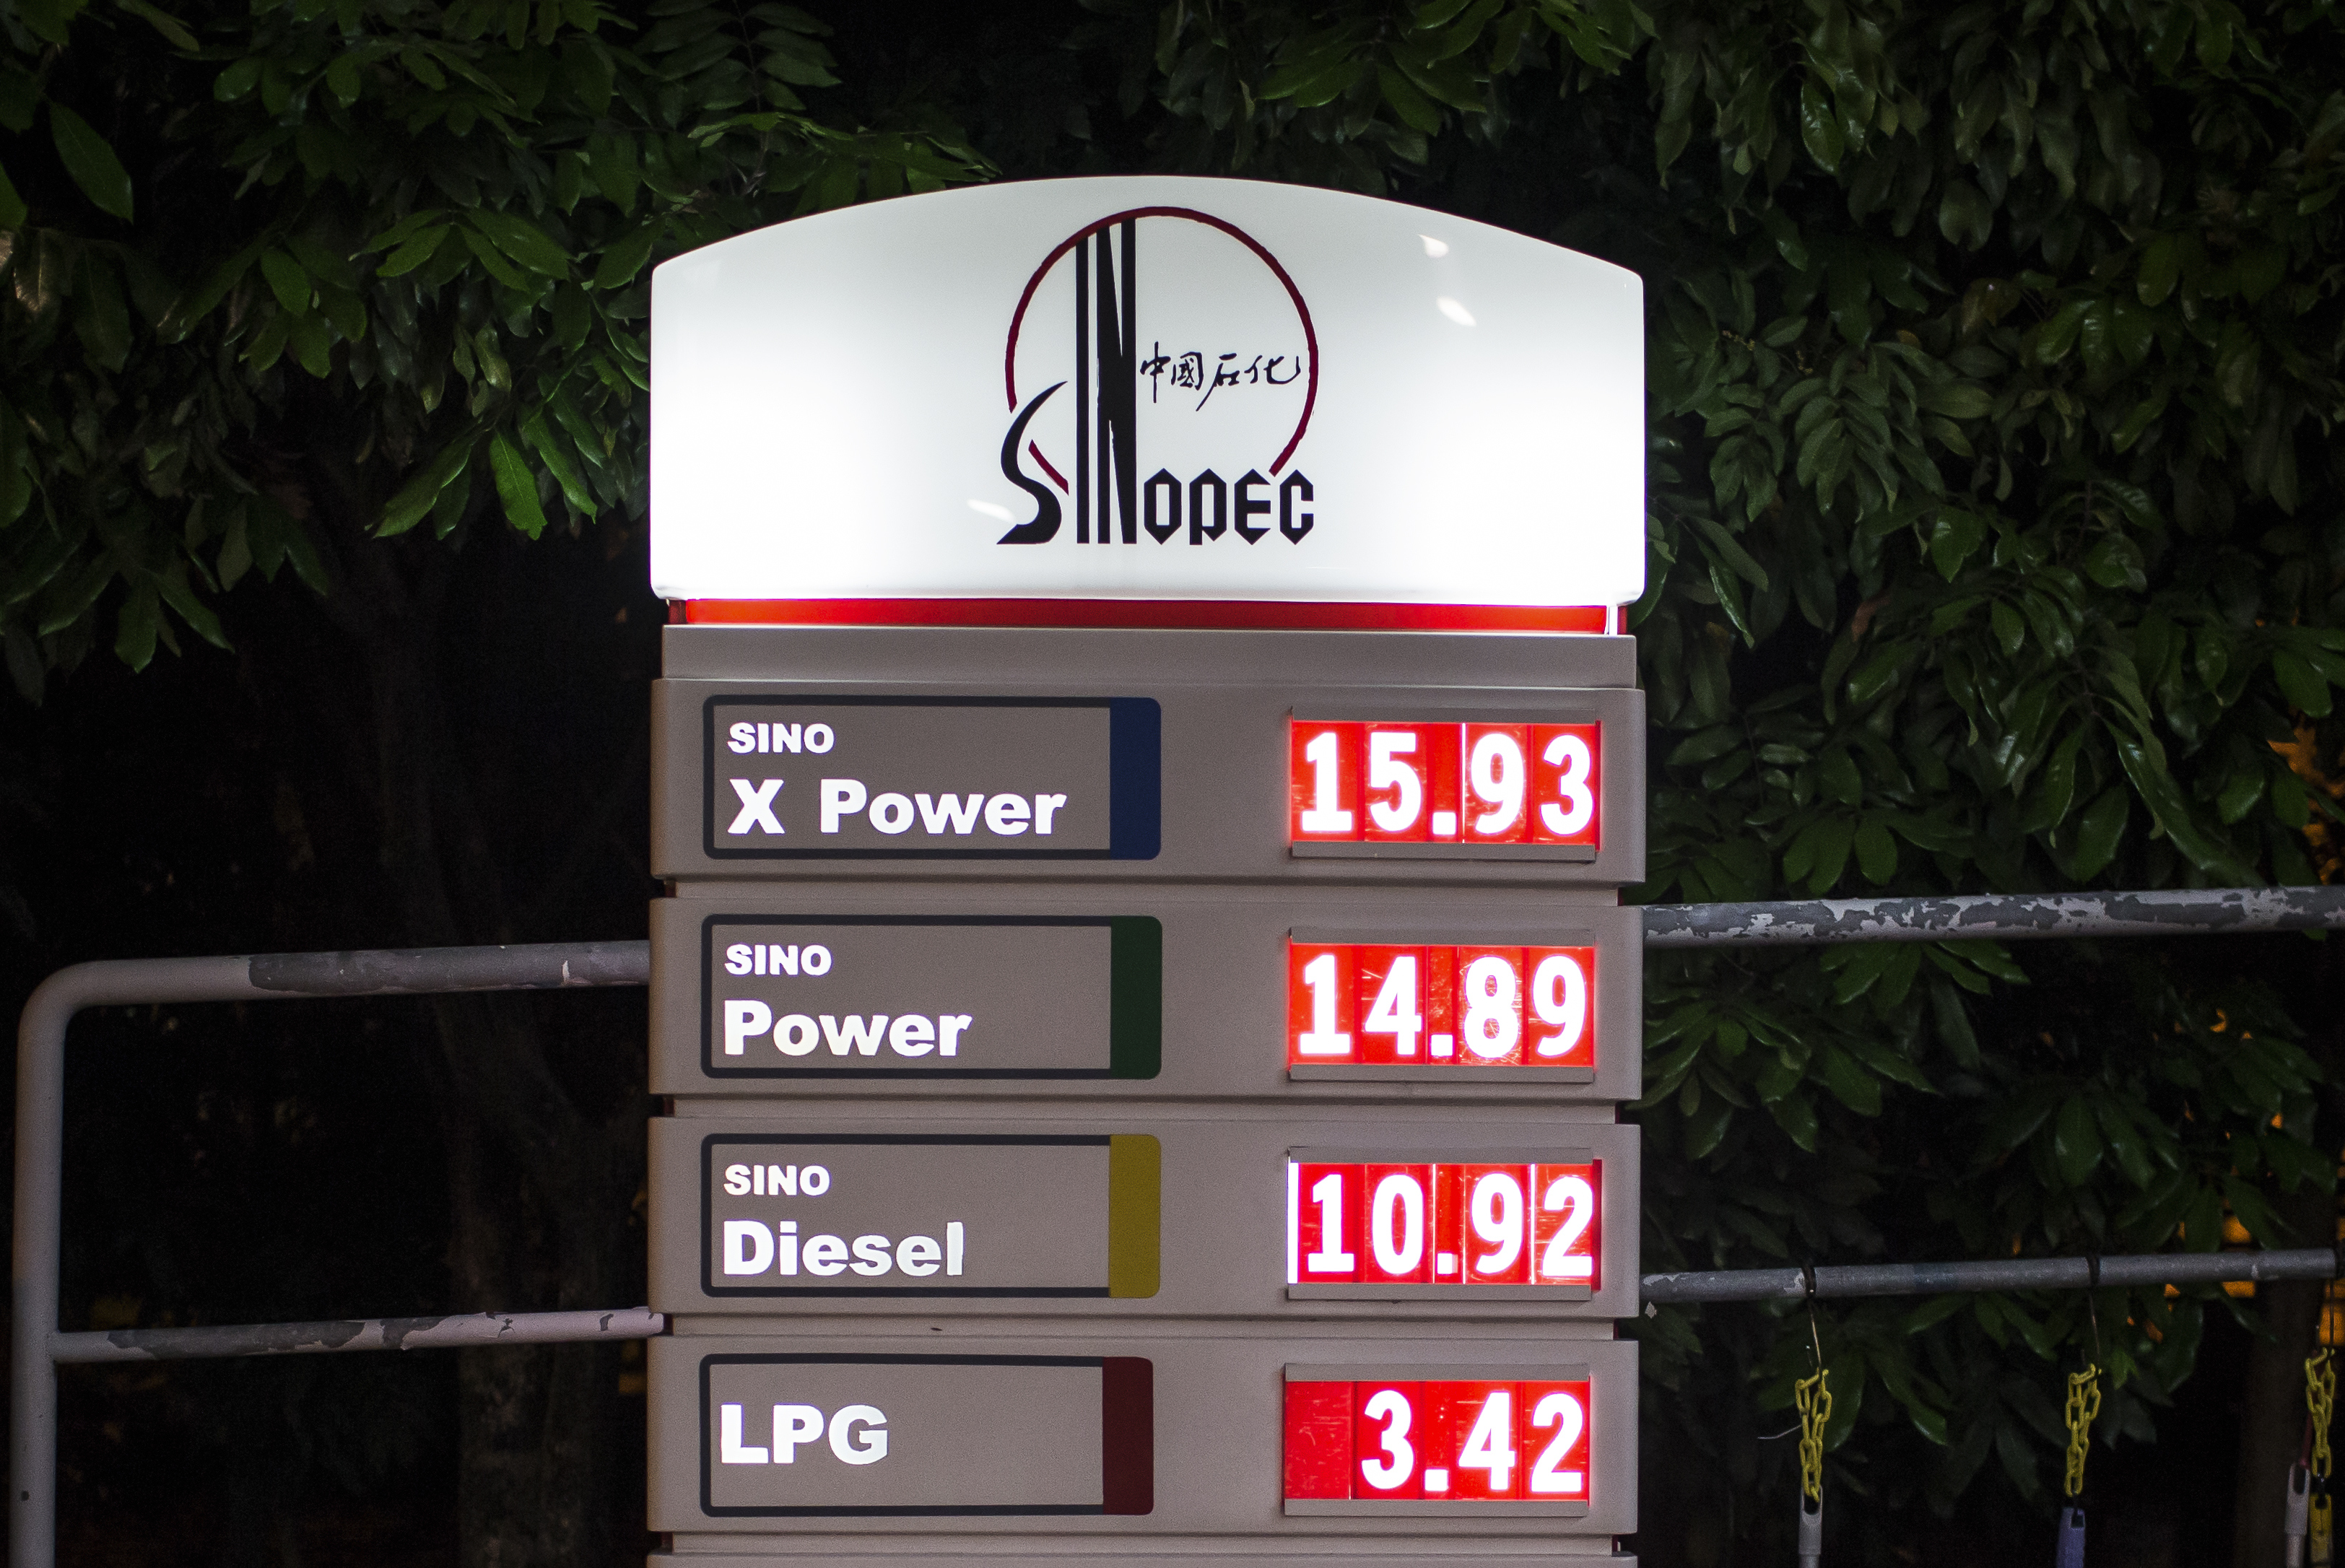 The China Petroleum & Chemical Corp. (Sinopec) logo and oil prices are illuminated at night at one of the company's gas stations in Hong Kong, China.